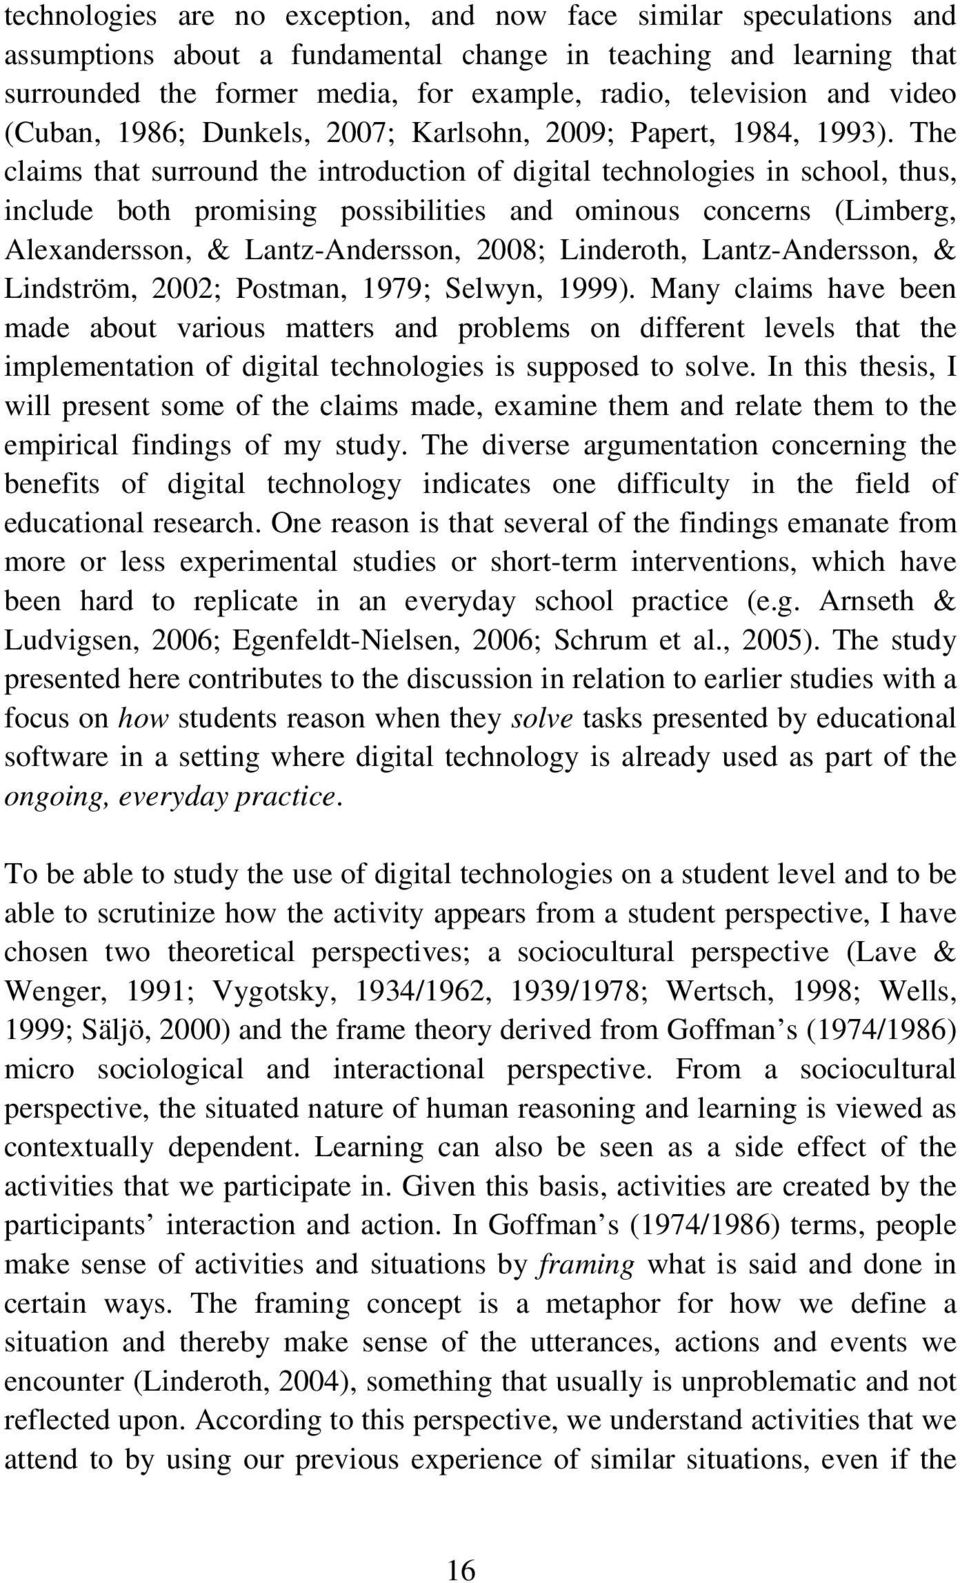 The claims that surround the introduction of digital technologies in school, thus, include both promising possibilities and ominous concerns (Limberg, Alexandersson, & Lantz-Andersson, 2008;